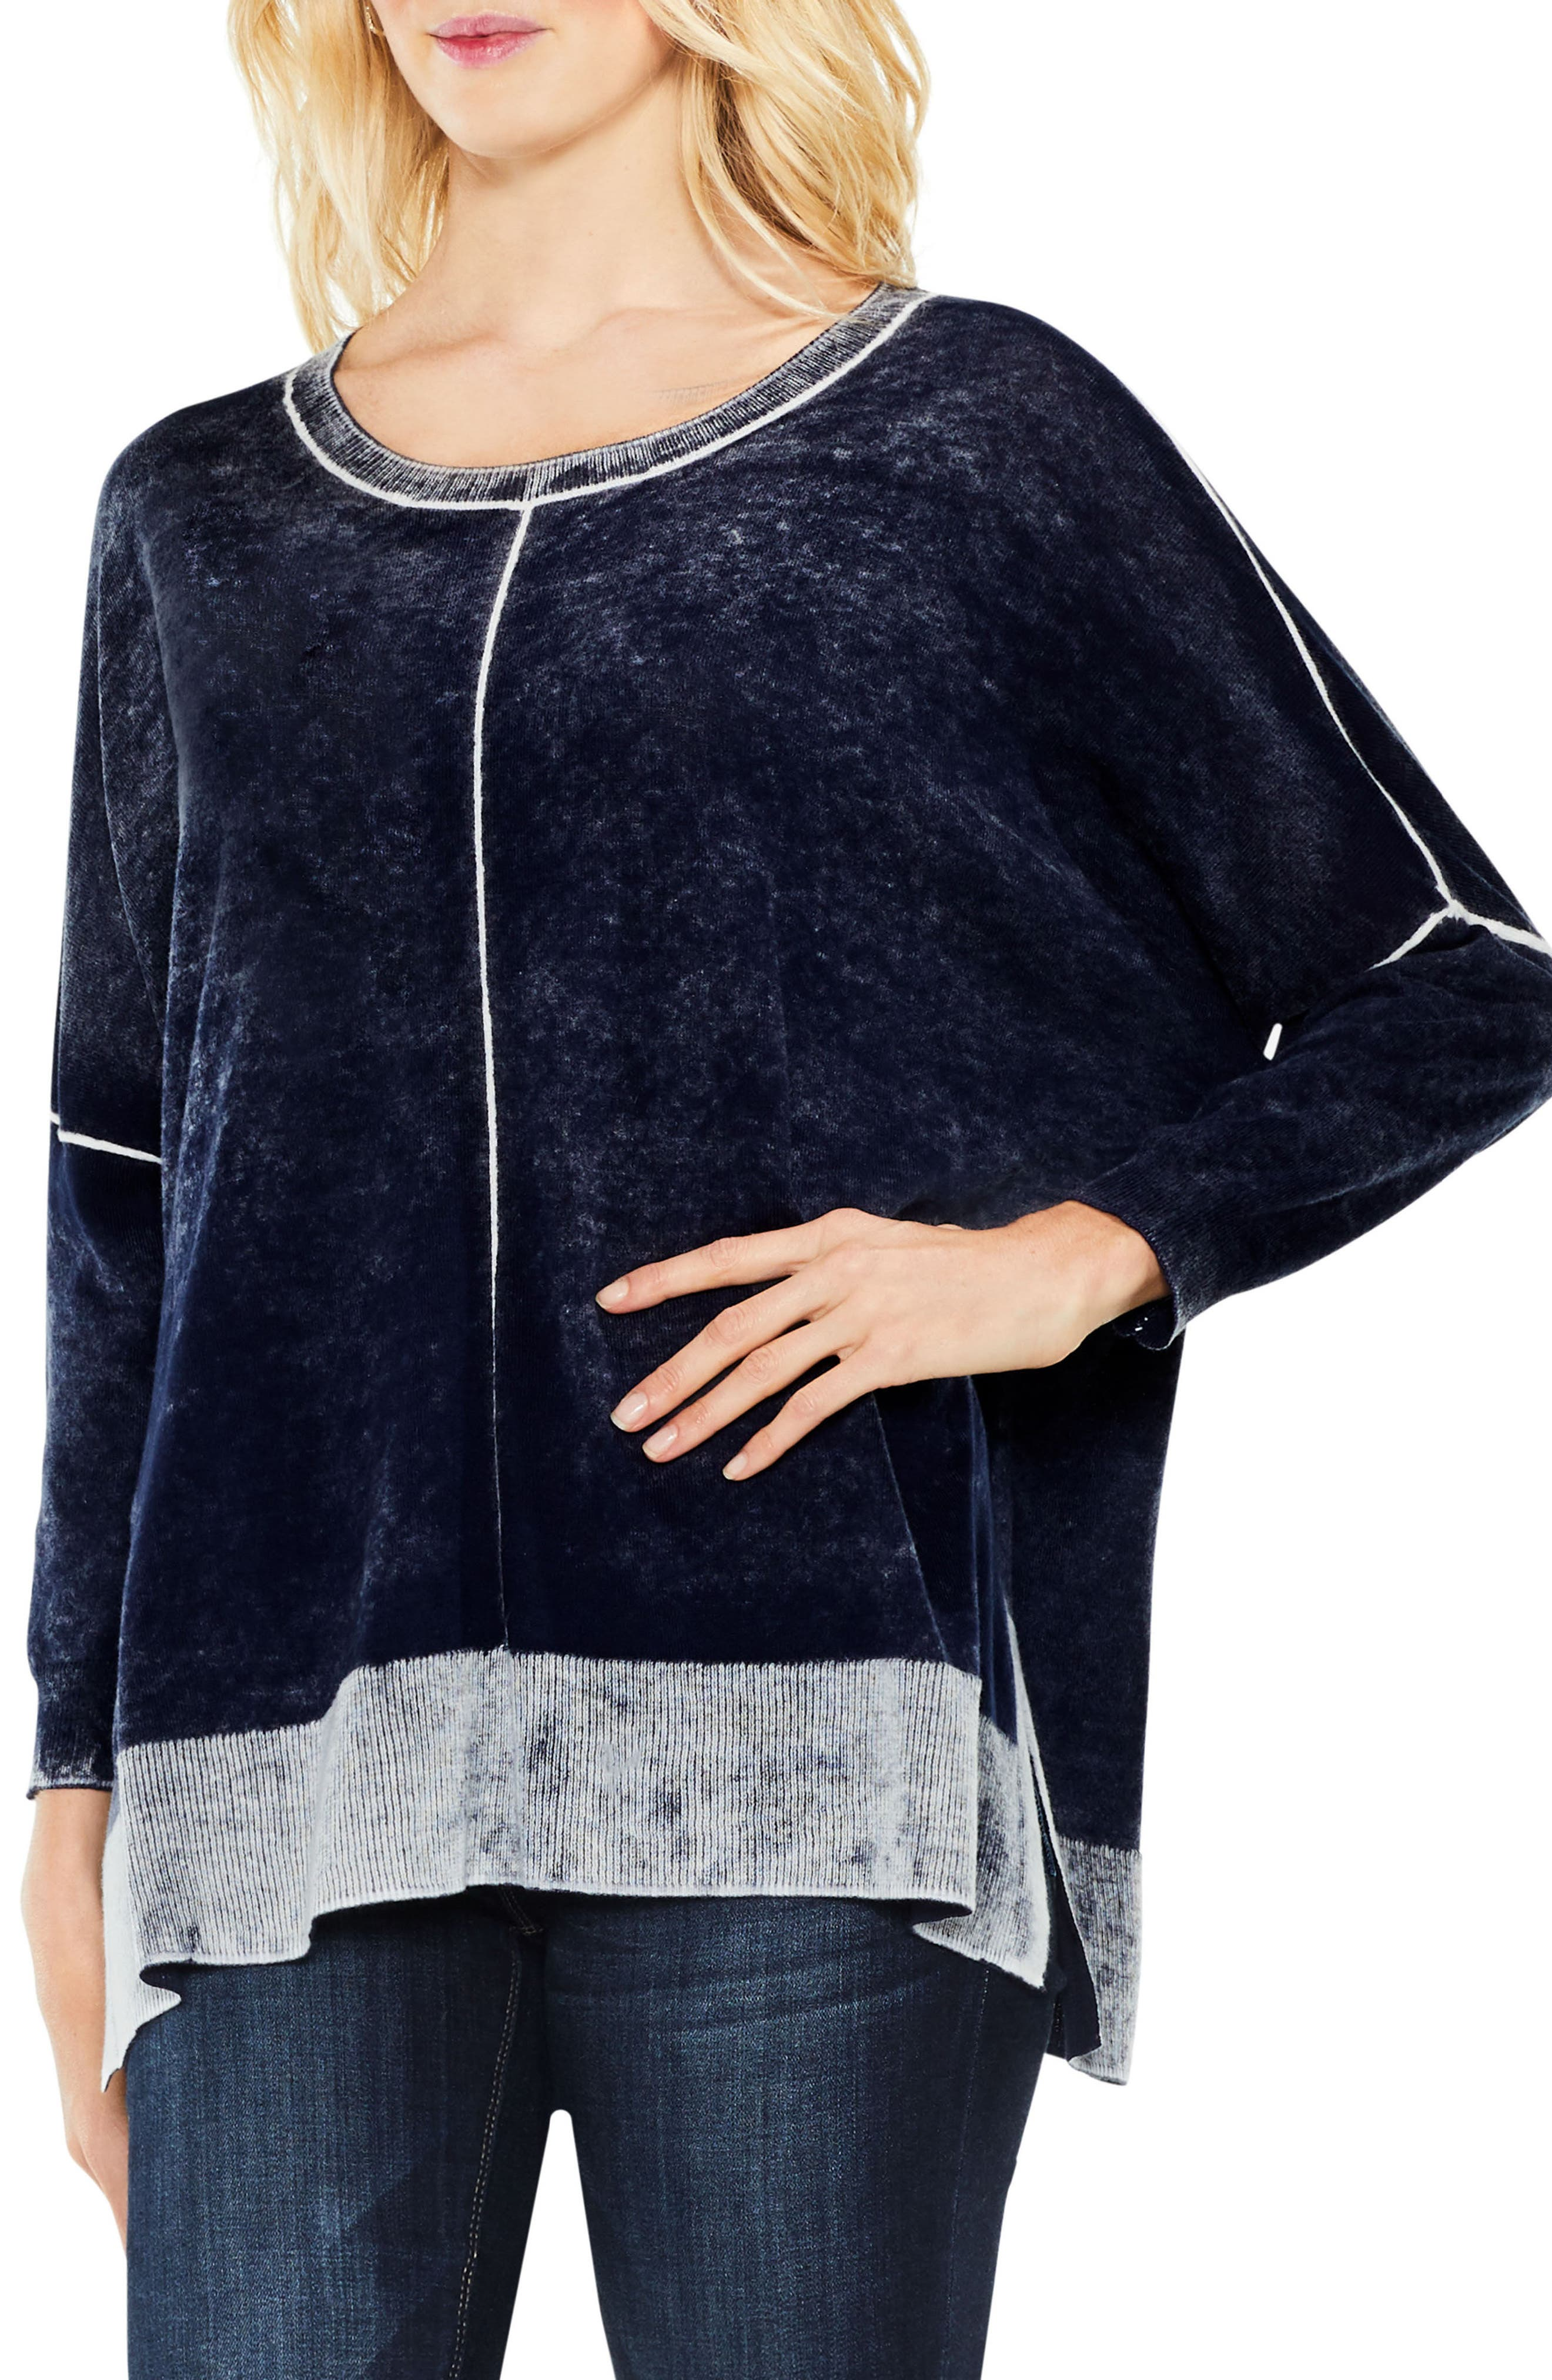 Alternate Image 1 Selected - Two by Vince Camuto Inside Out Printed Sweater